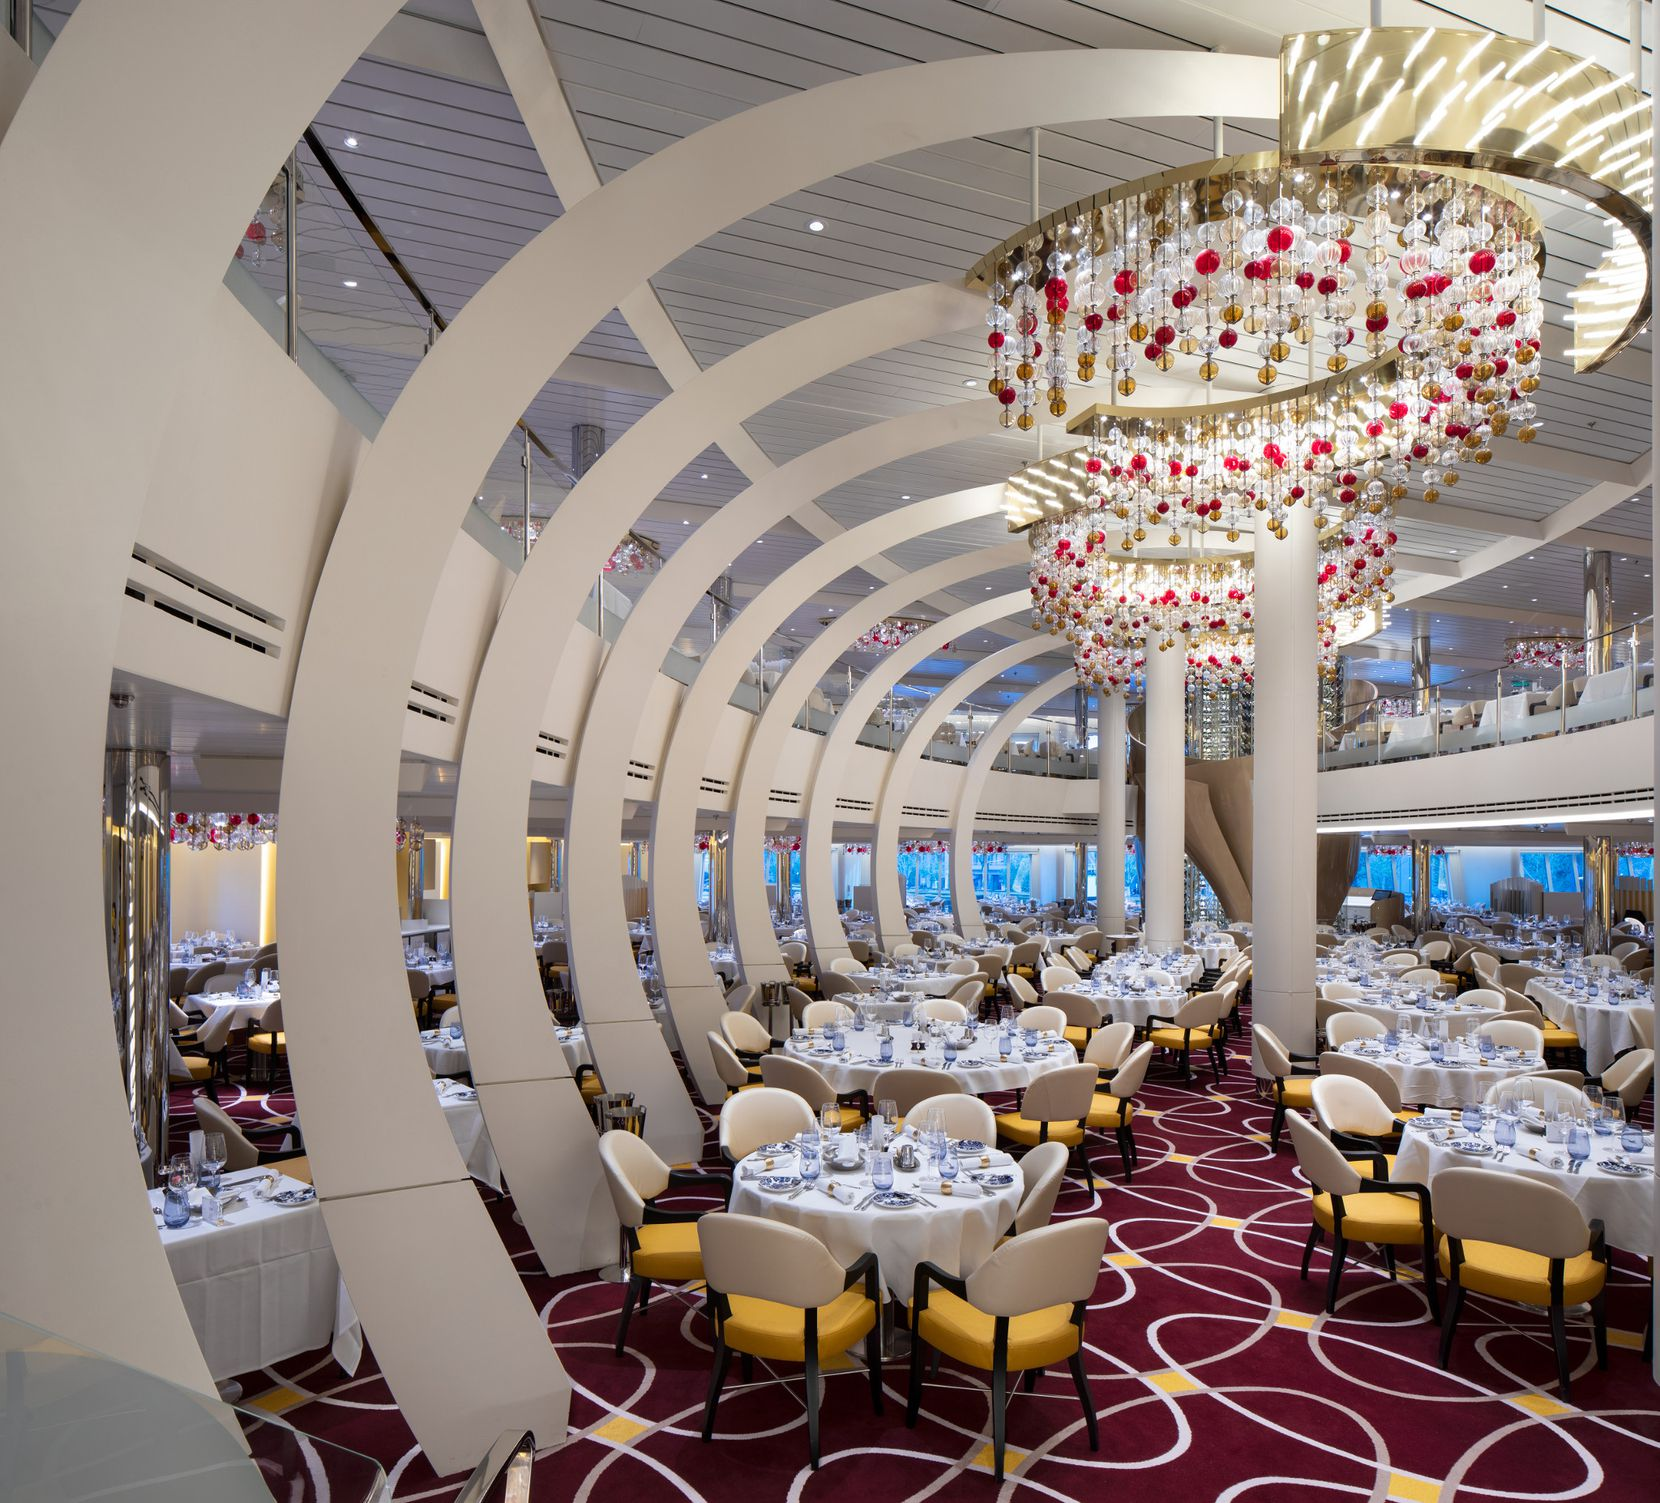 Most workers in the Nieuw Statendam's dining hall trained at one of two Holland America Line academies, in Jakarta and Manila.